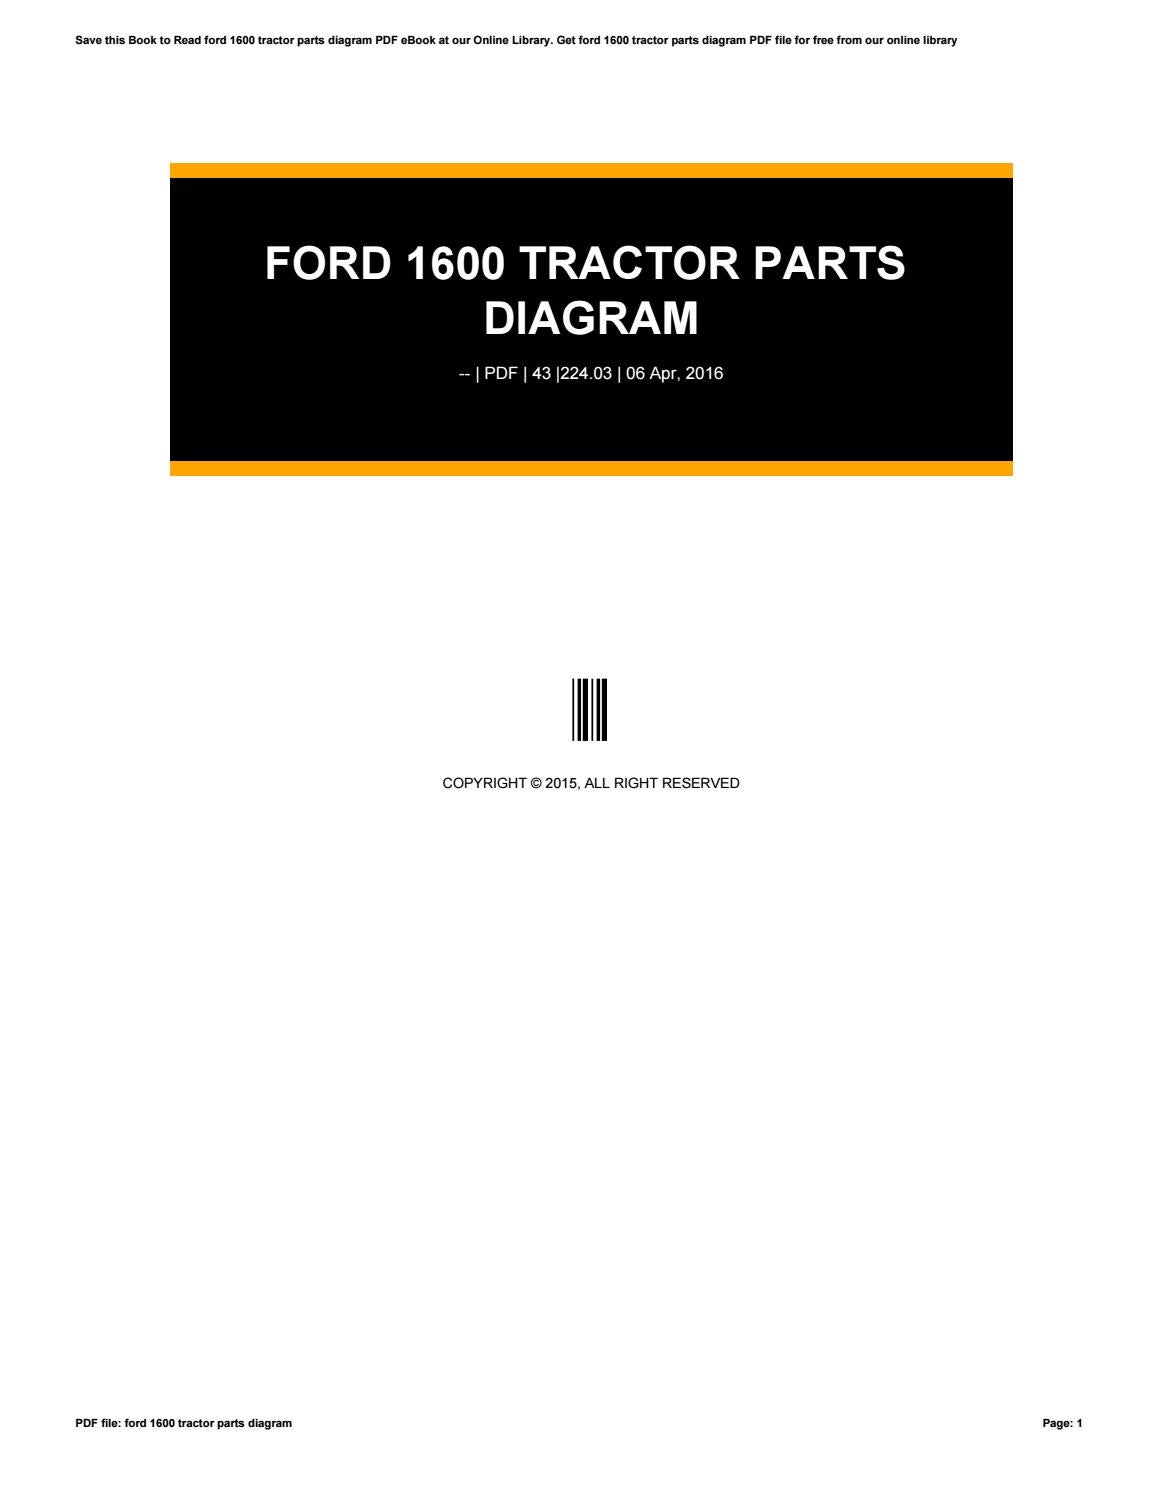 Ford 1600 Tractor Parts Diagram By Hanin75dityana